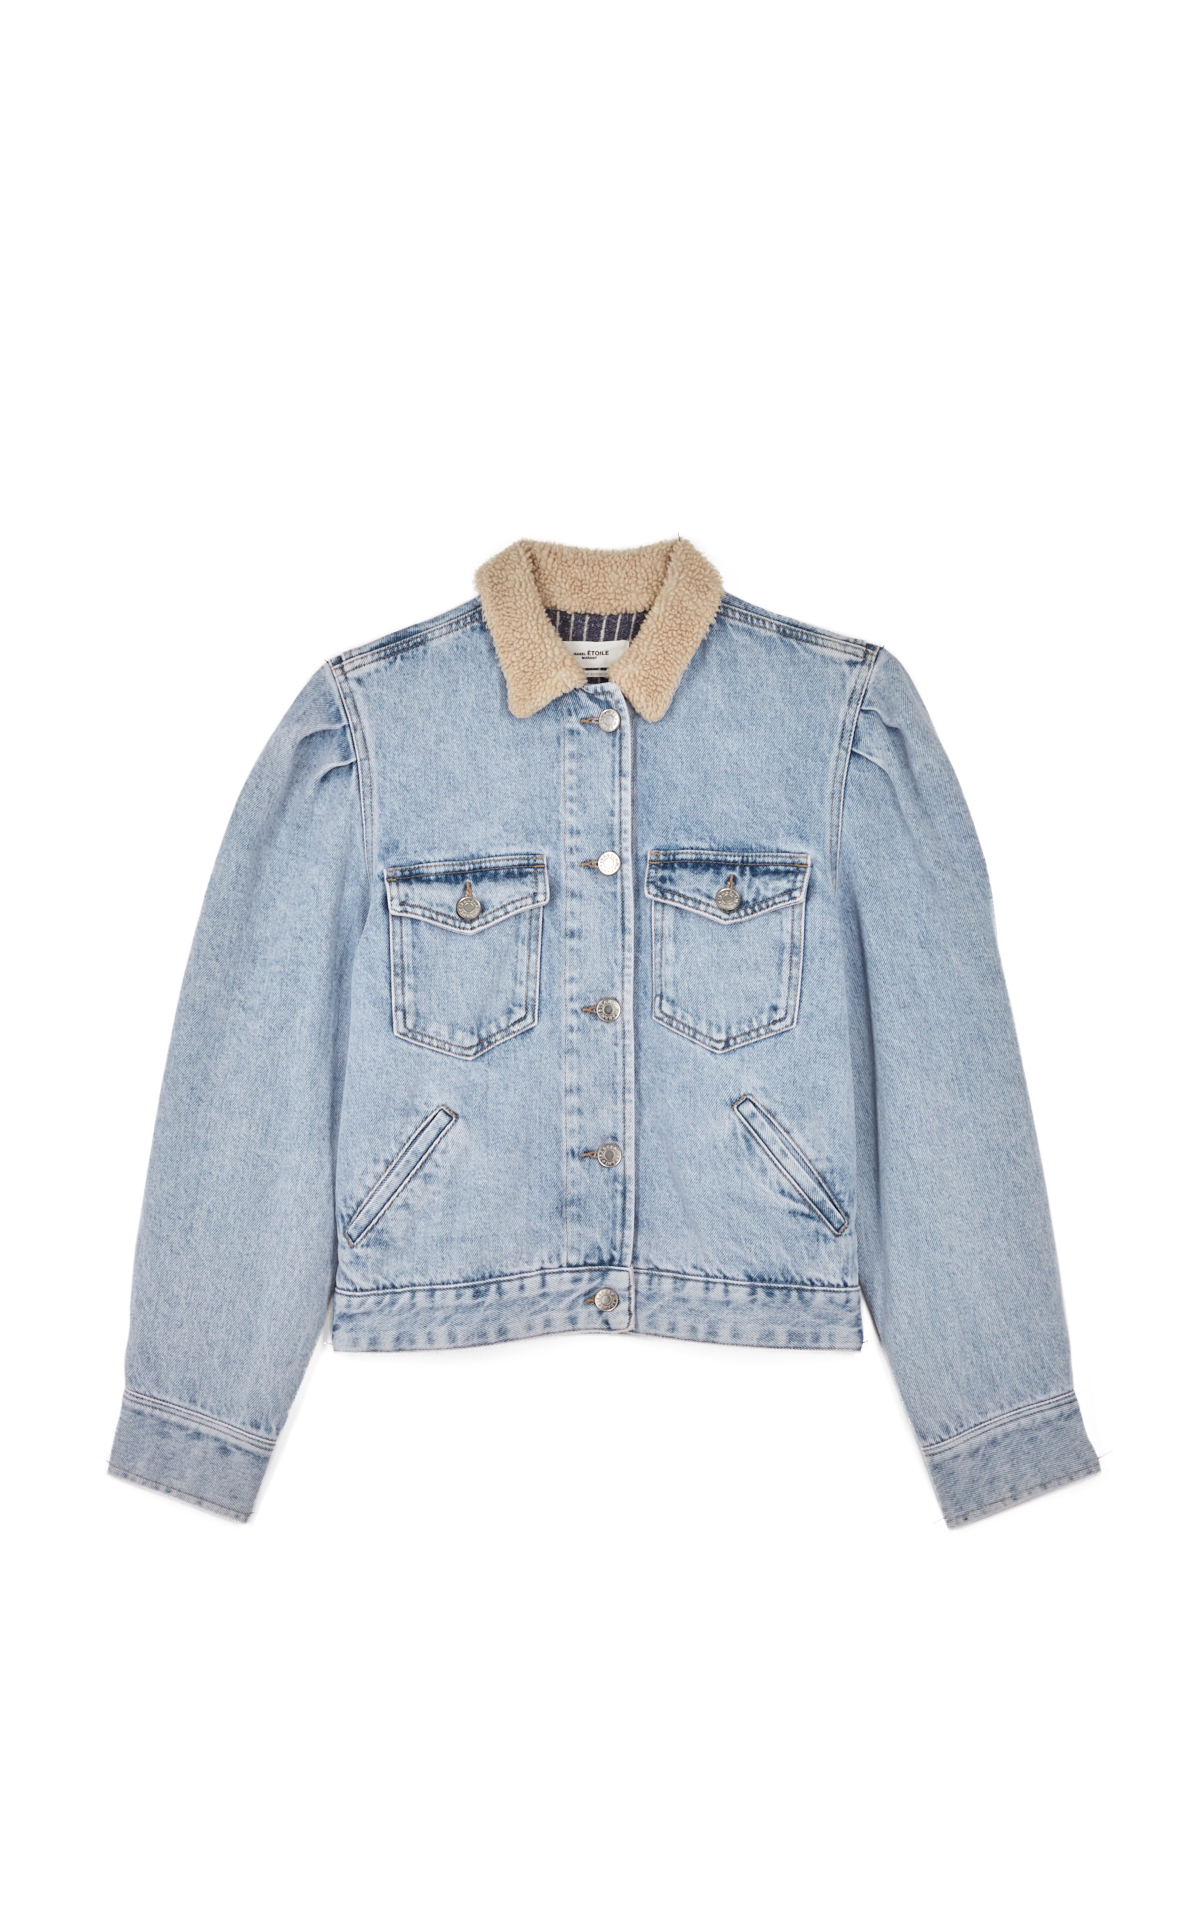 Isabel Marant Nolinea denim jacket*